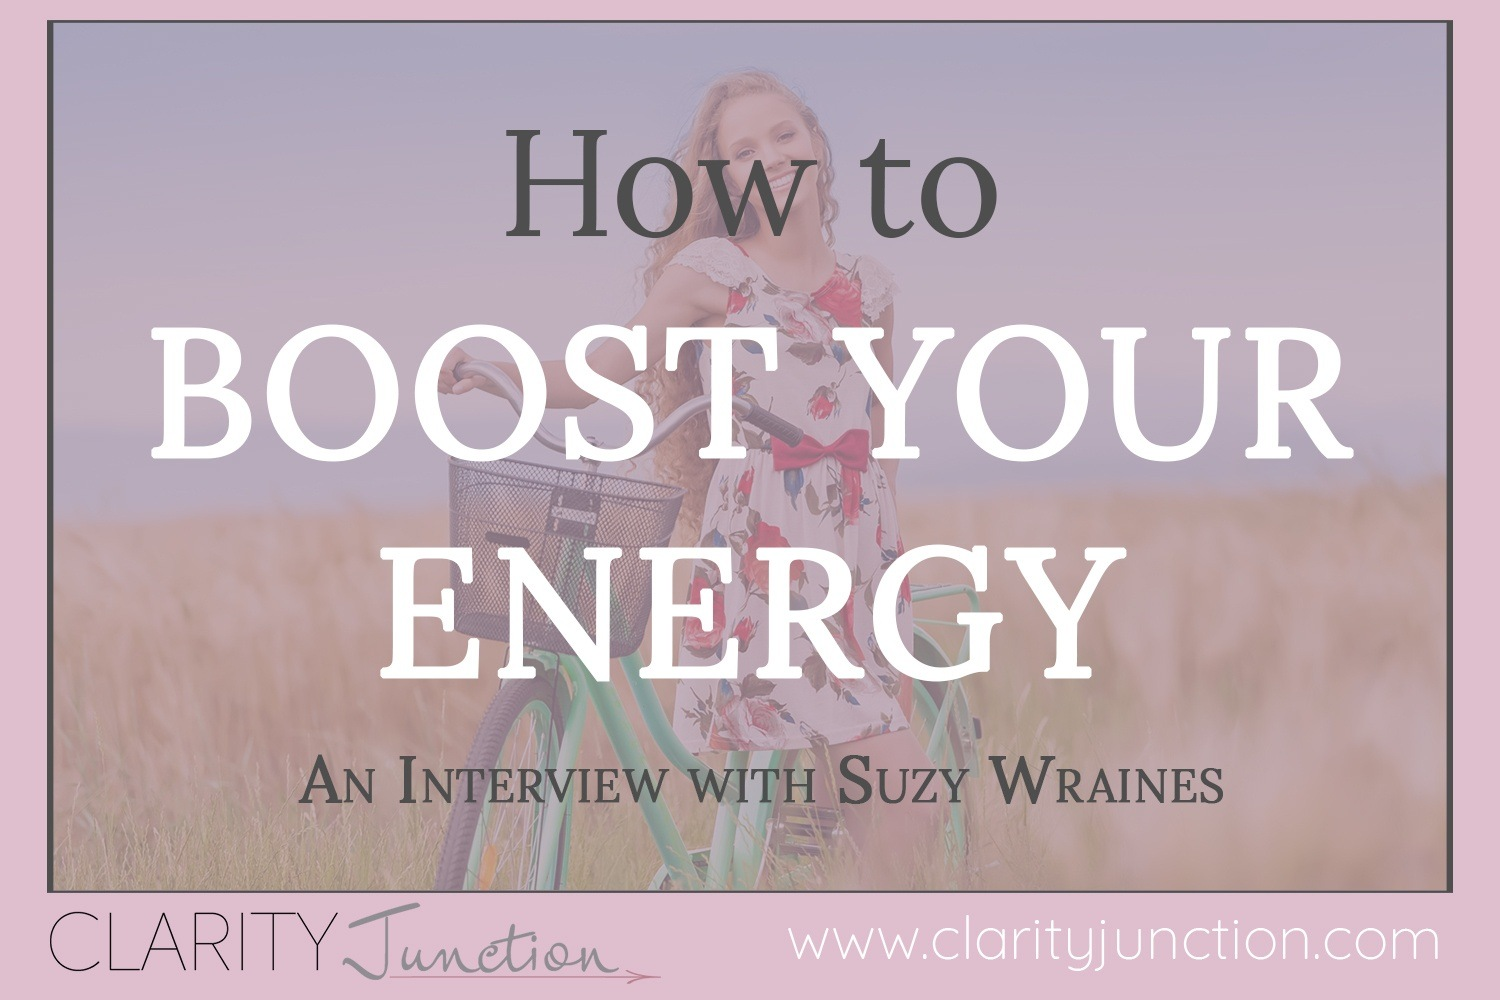 Podcast How to Boost Your Energy